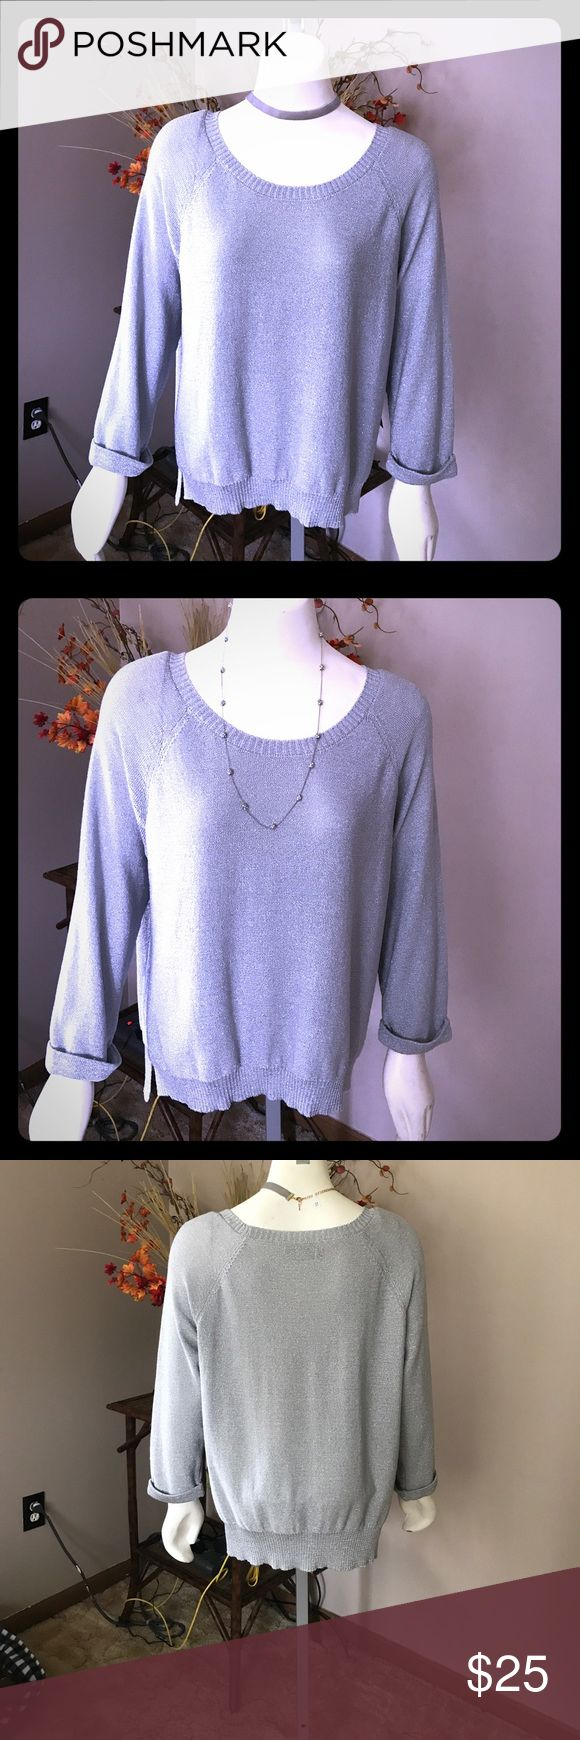 ❄️ J Lo silver sparkly sweater NWT size XL ❄️ ❄️ Get ready for the holidays with this silver sparkly sweater by Jennifer Lopez!! Absolutely beautiful !! Brand New with Tags. Size XL ❄️ Jennifer Lopez Sweaters Crew & Scoop Necks